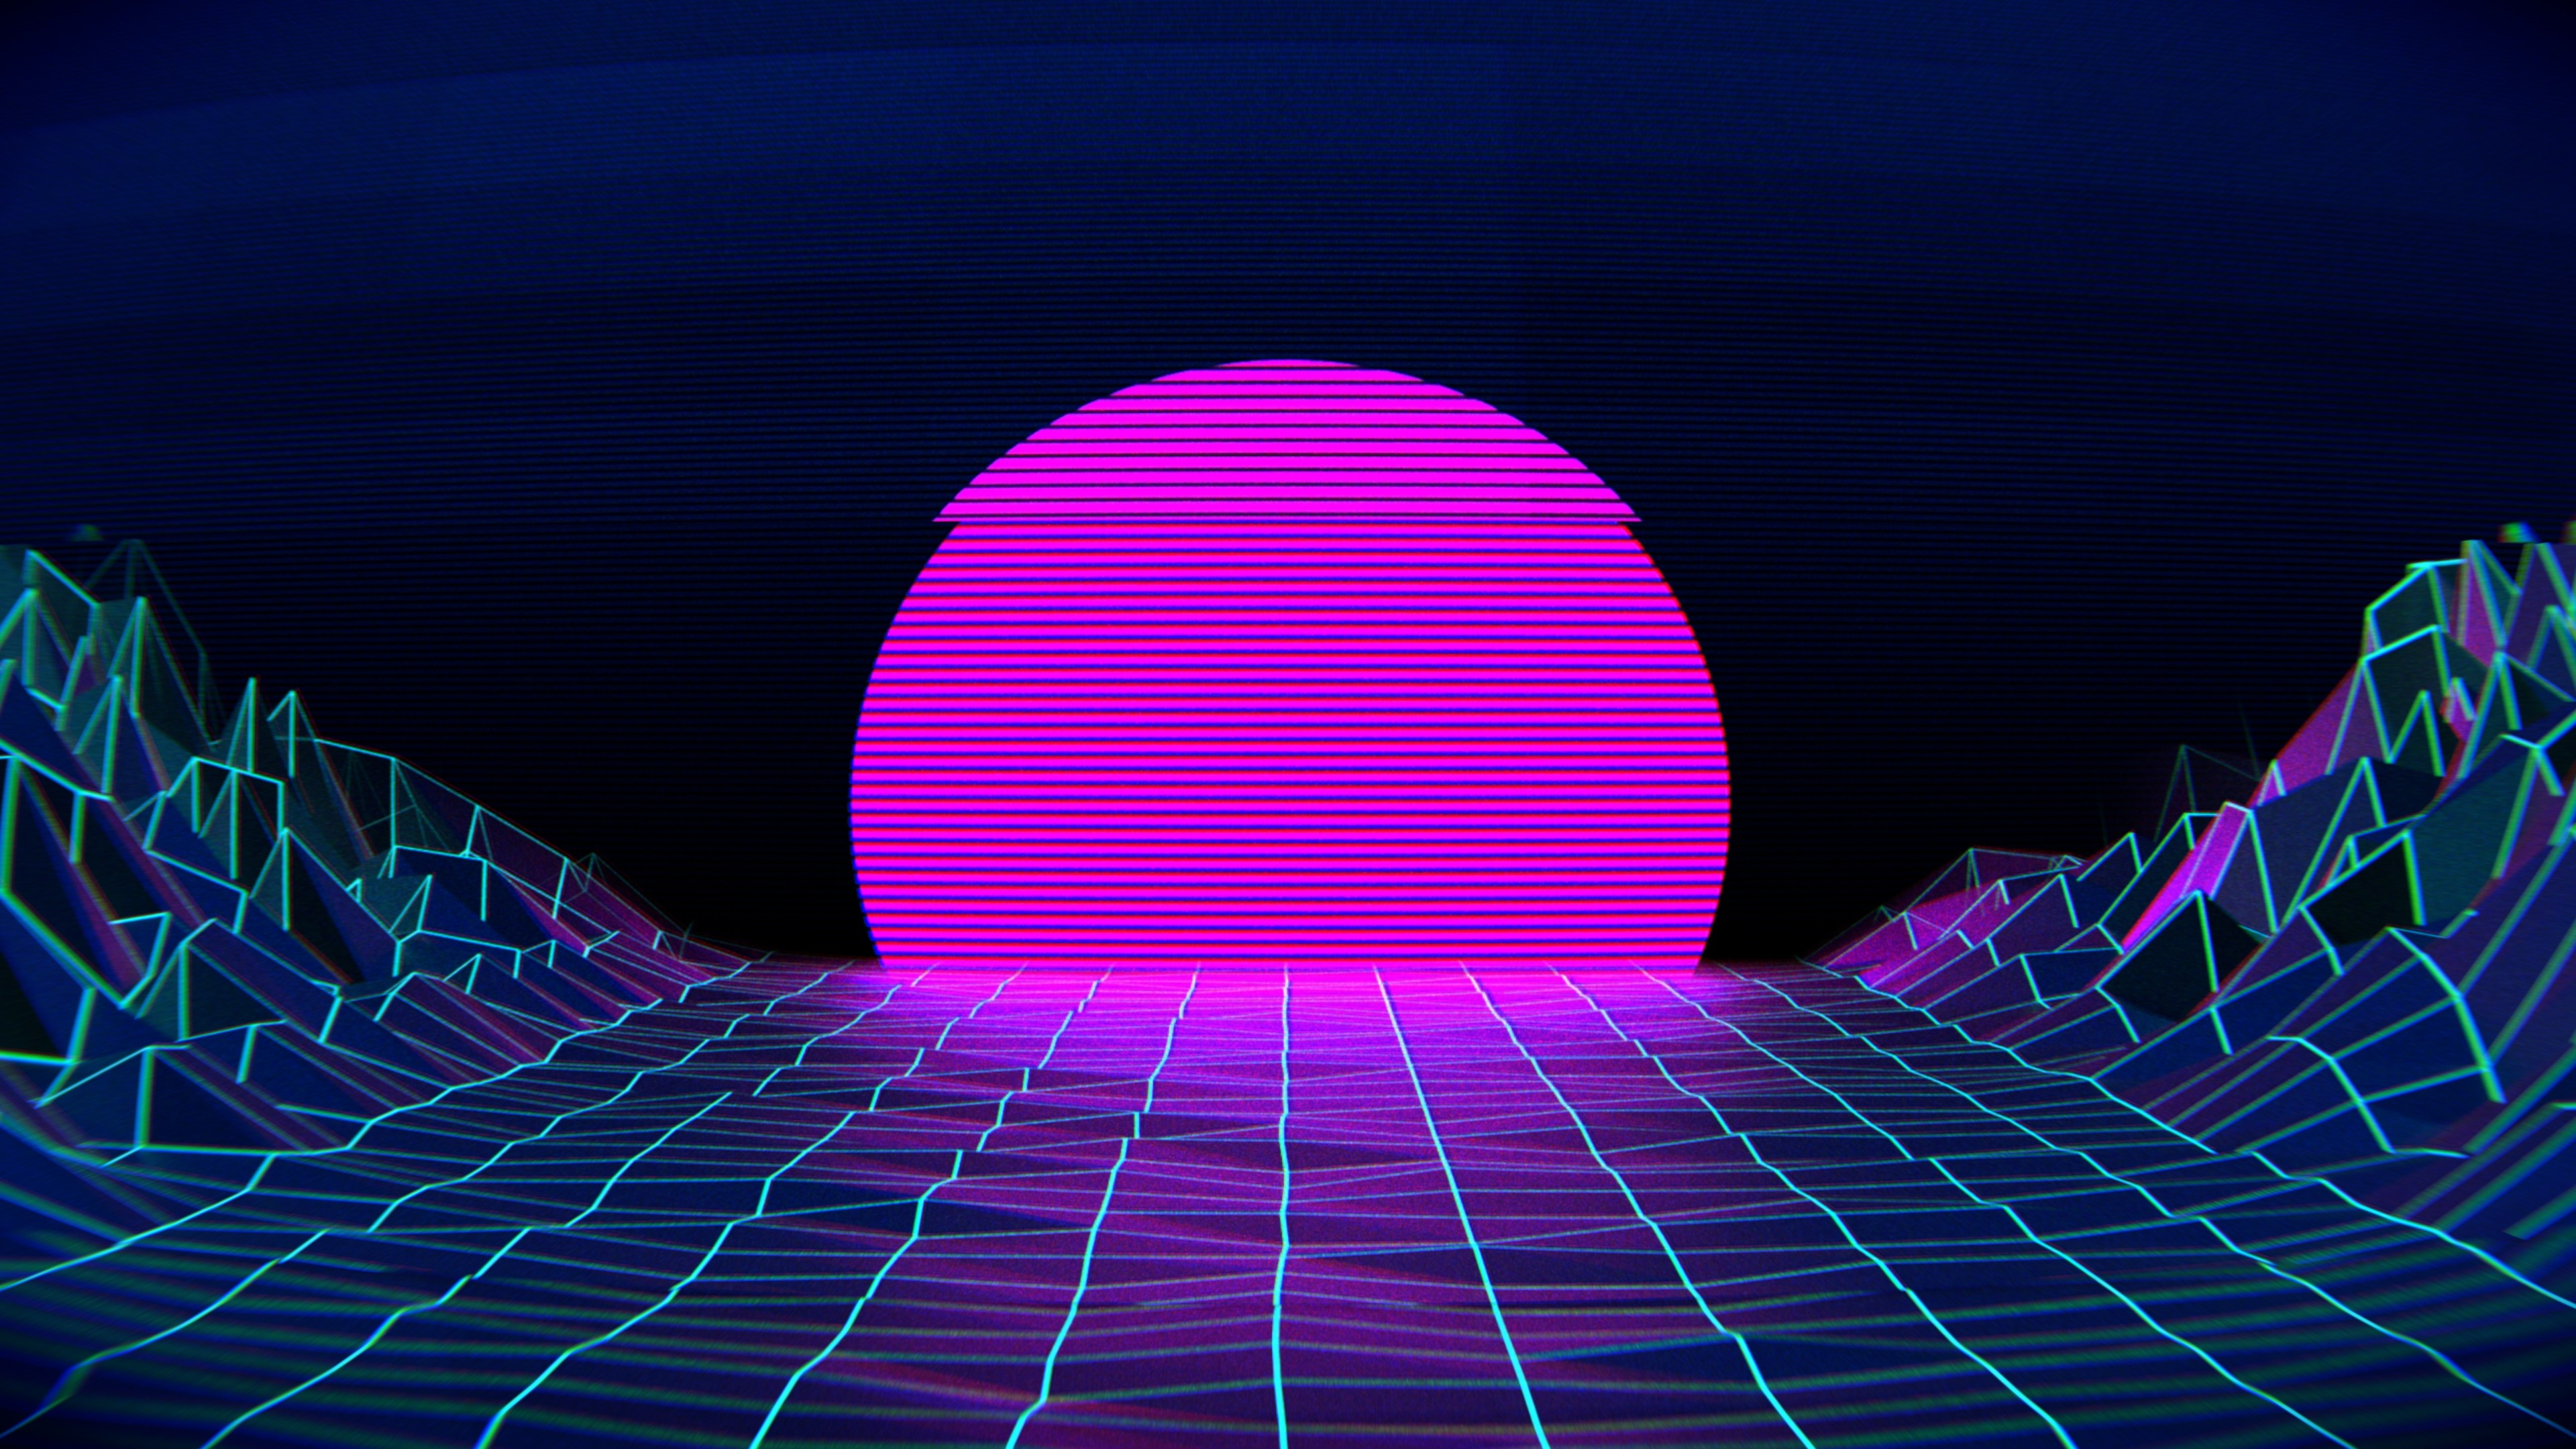 3d Hd Live Wallpaper For Android Phone Vaporwave Wallpapers 183 ①